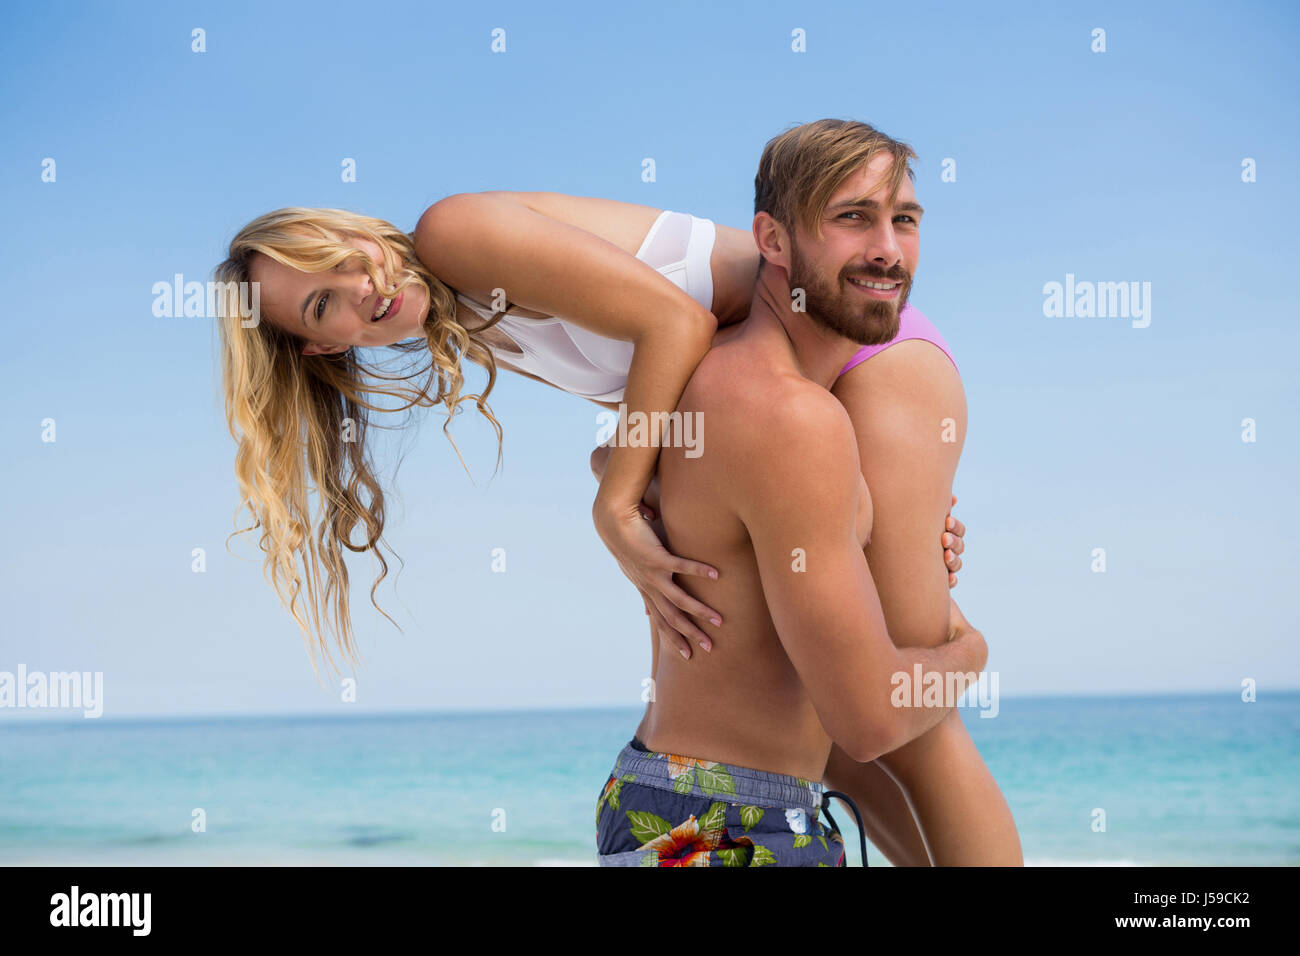 Portrait of man carrying girlfriend while standing at beach against clear sky - Stock Image